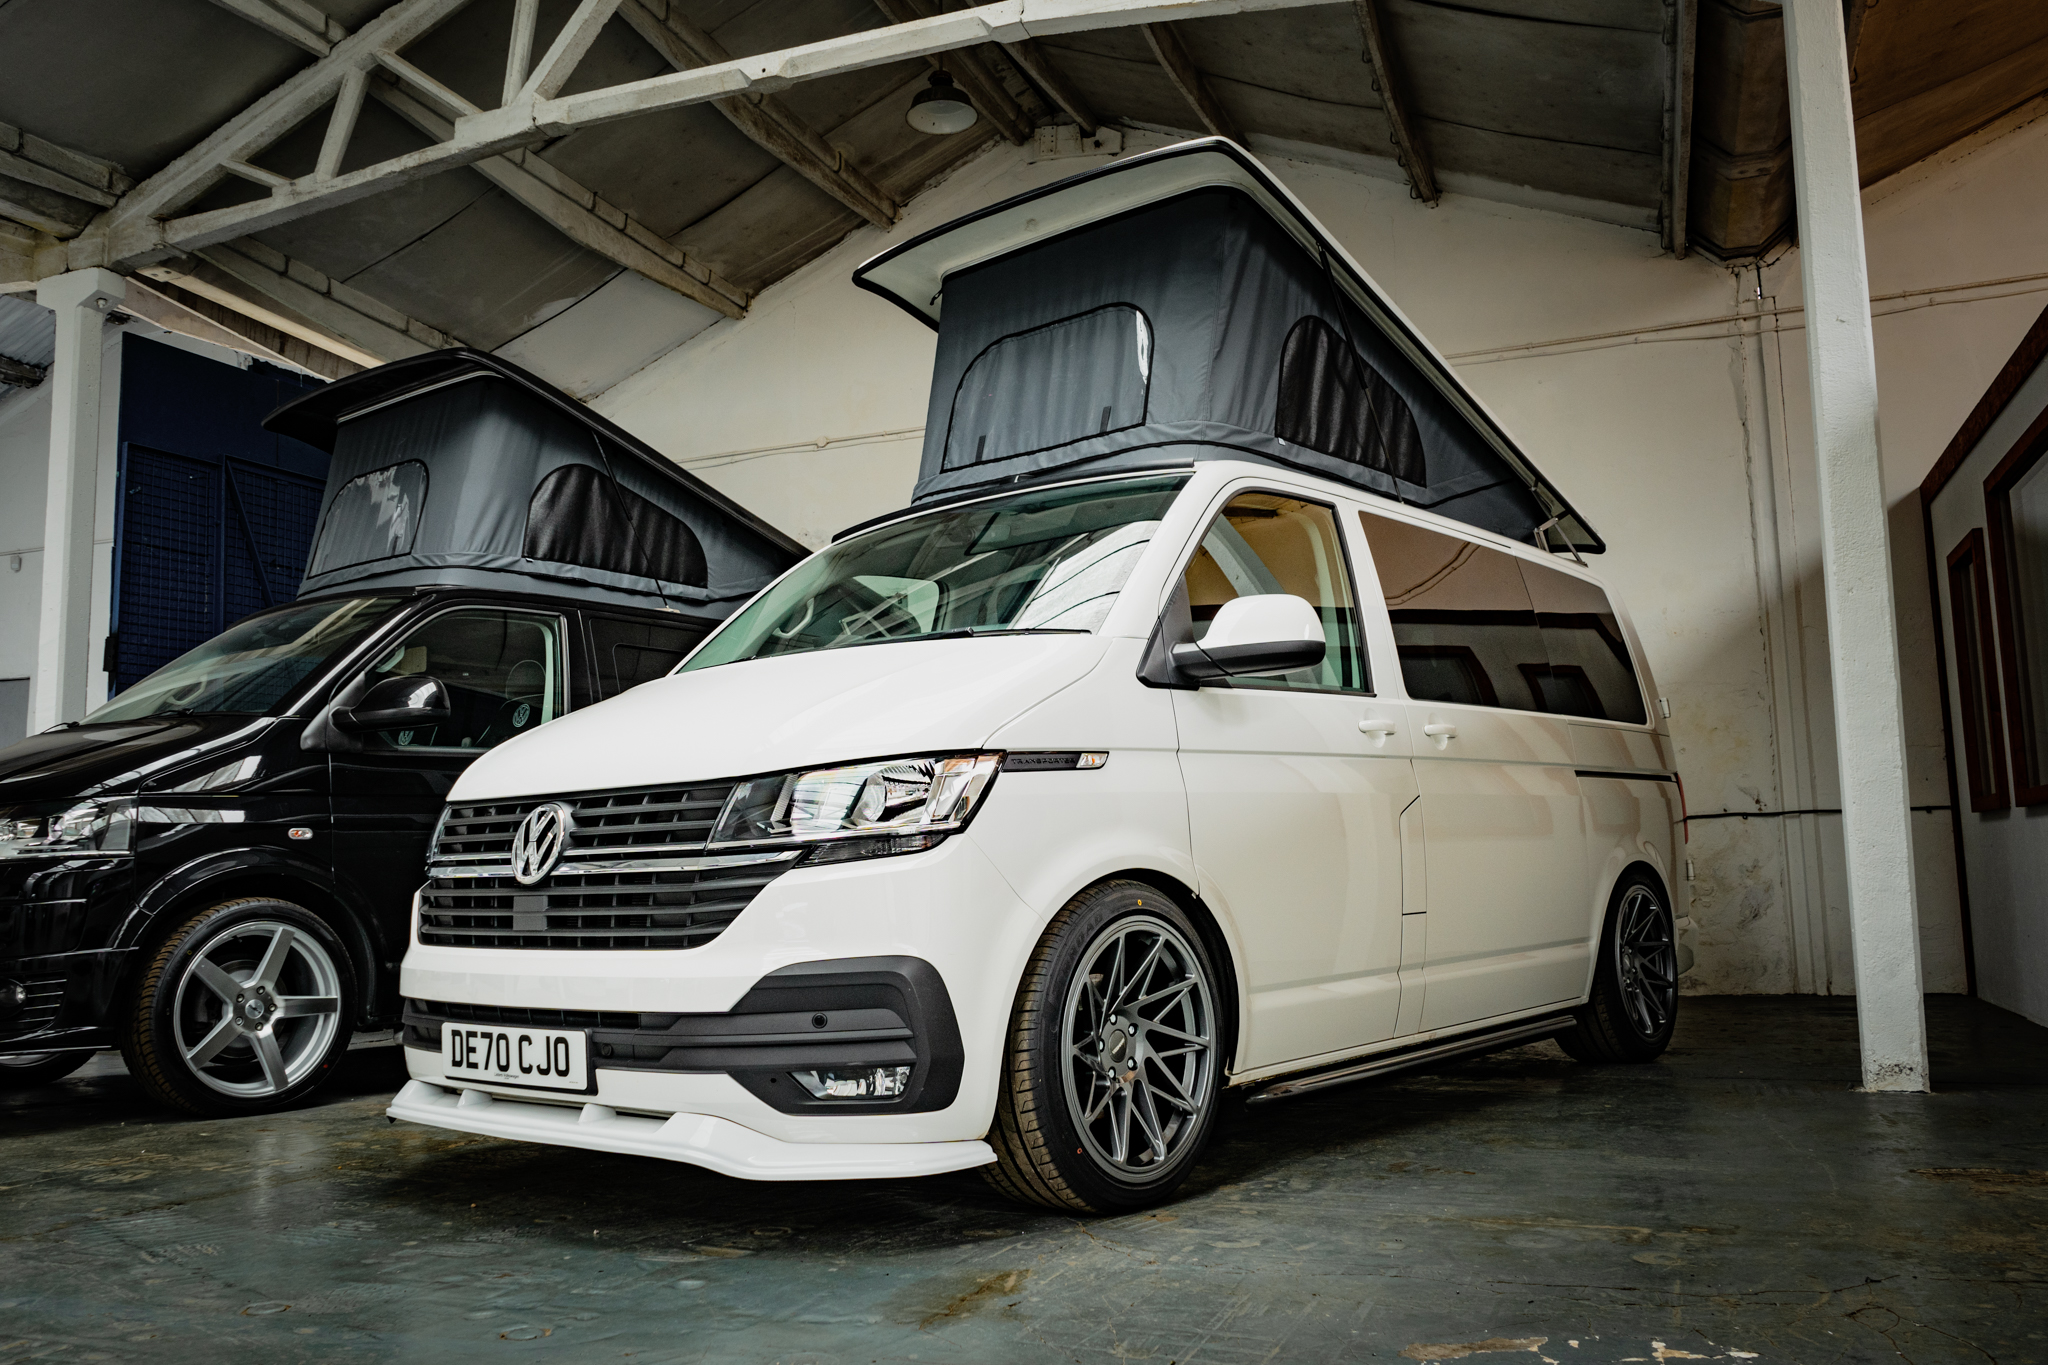 2020 VW T6.1 Highline in snow White with Poptop Roof  - 30th Aug